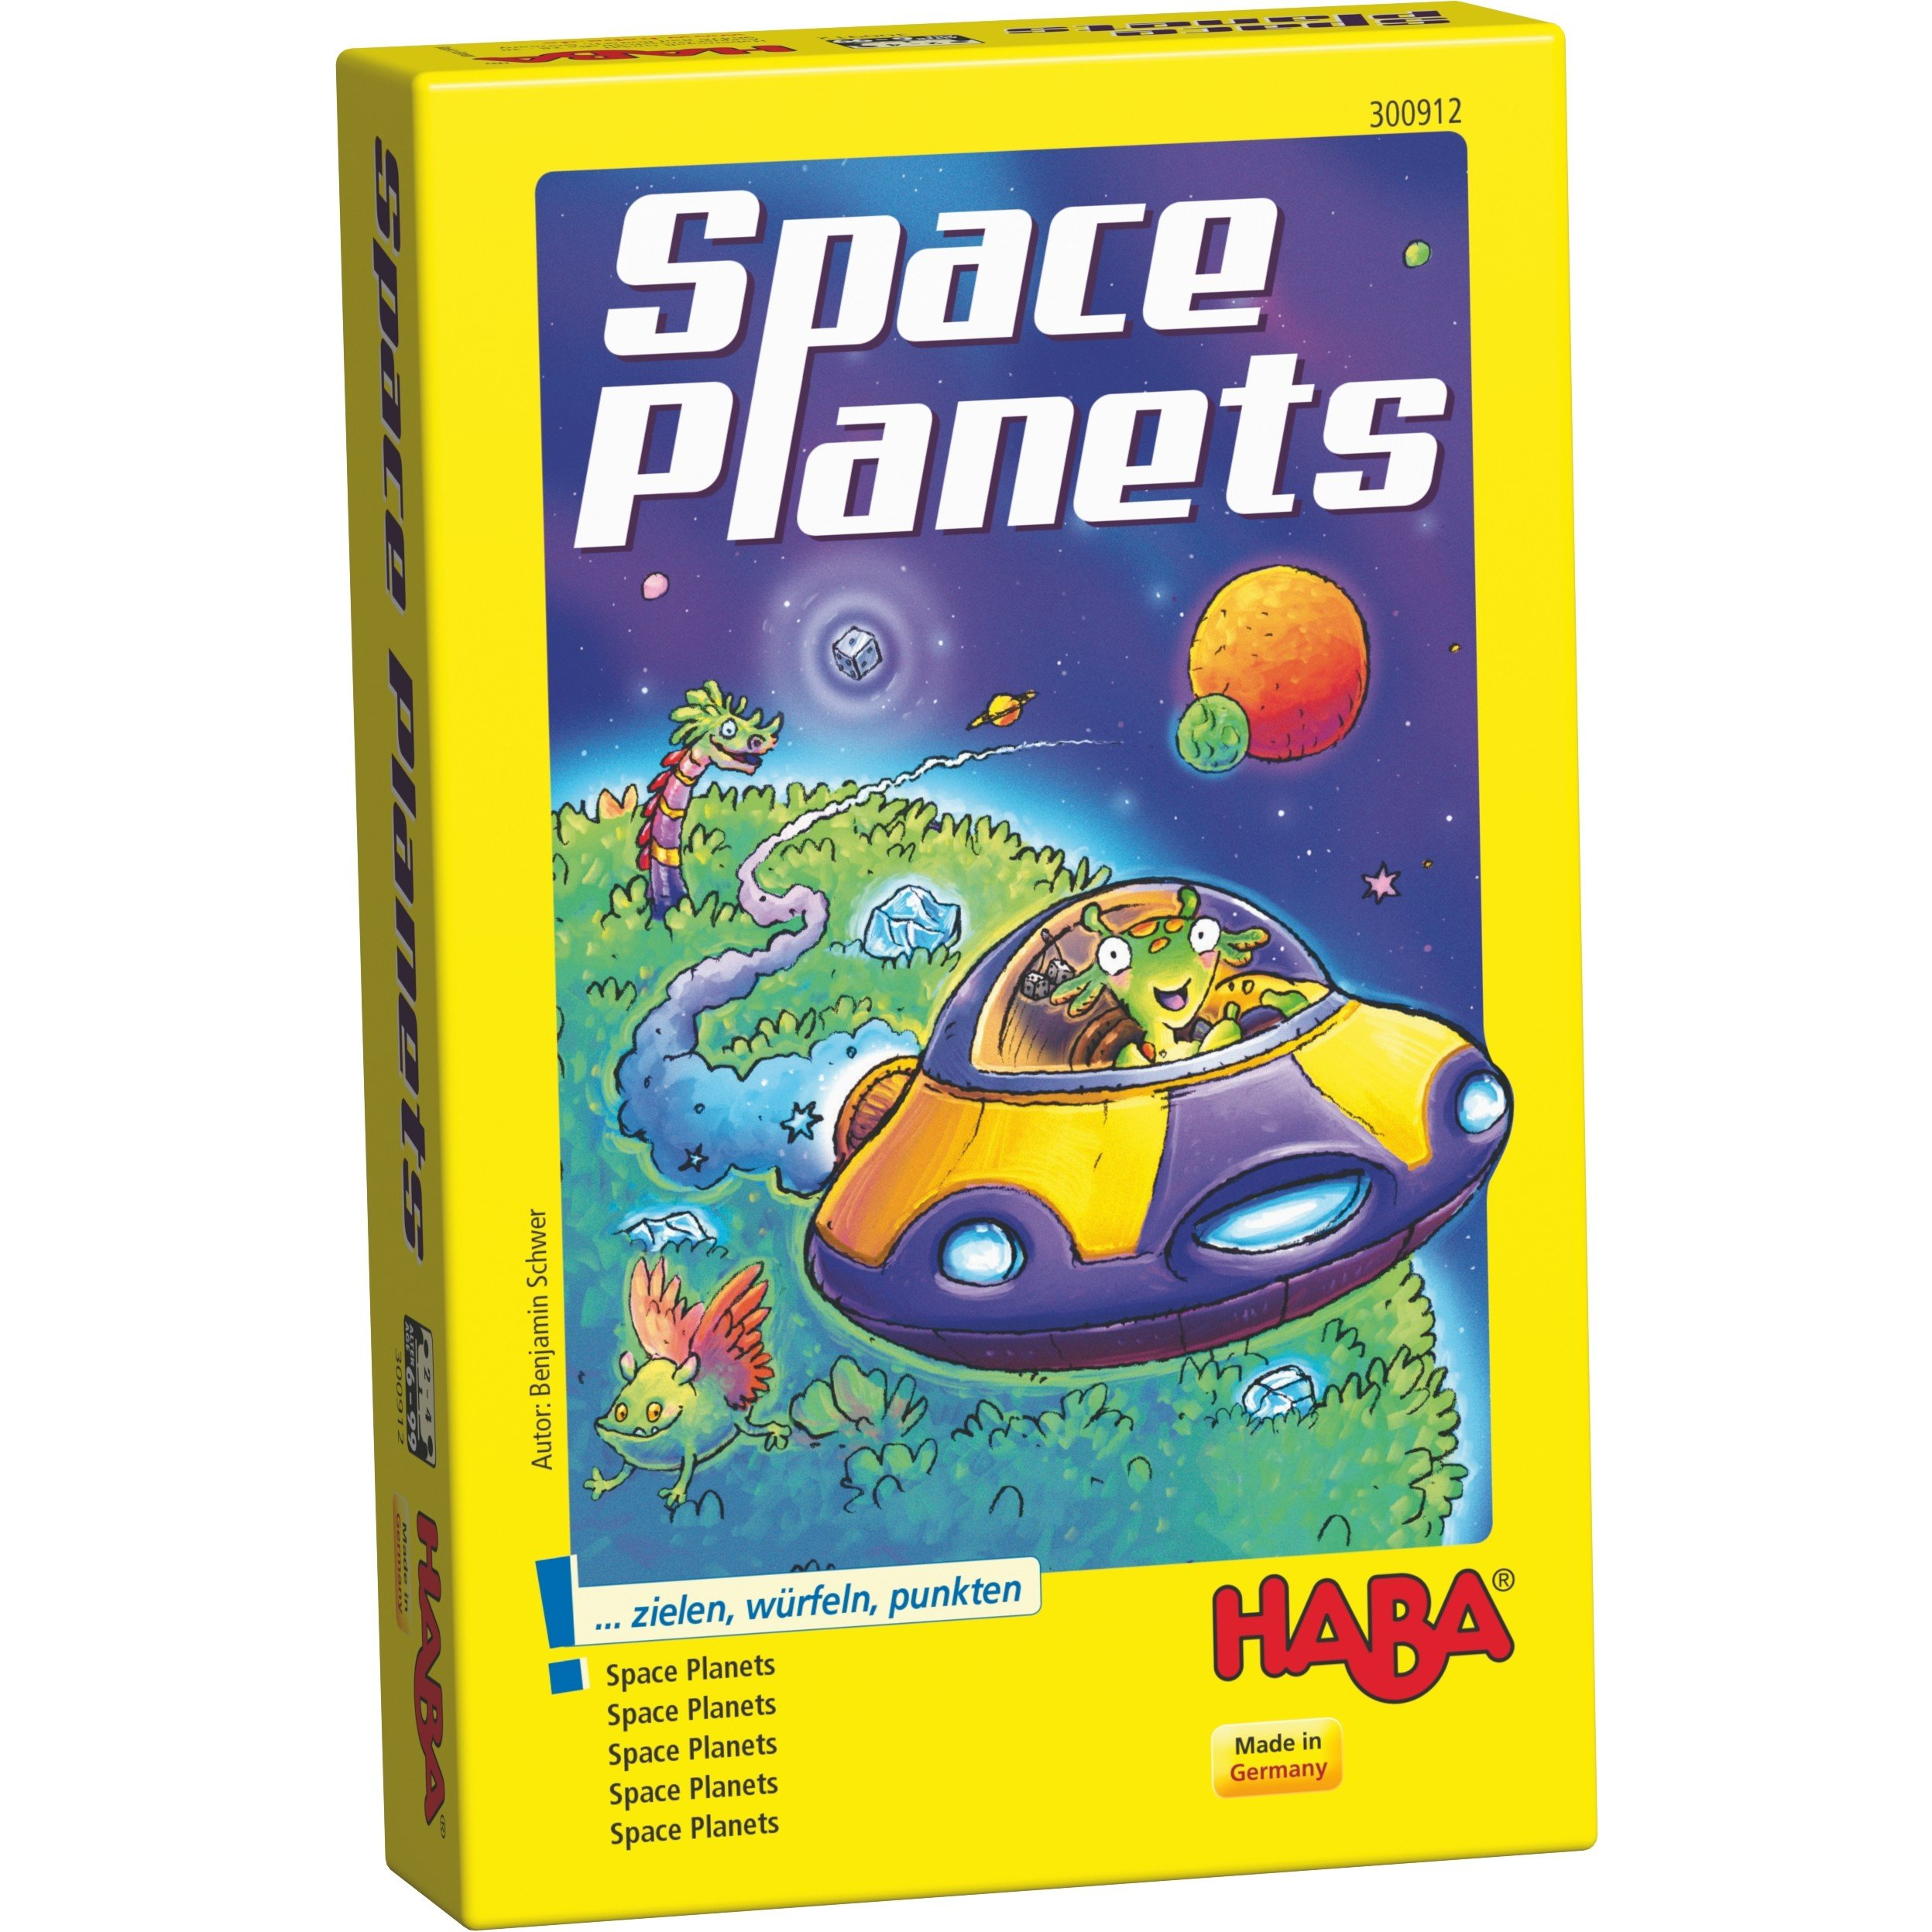 HABA Space Planets A Dice and Discovery Game for Ages 6 + (Made in Germany)